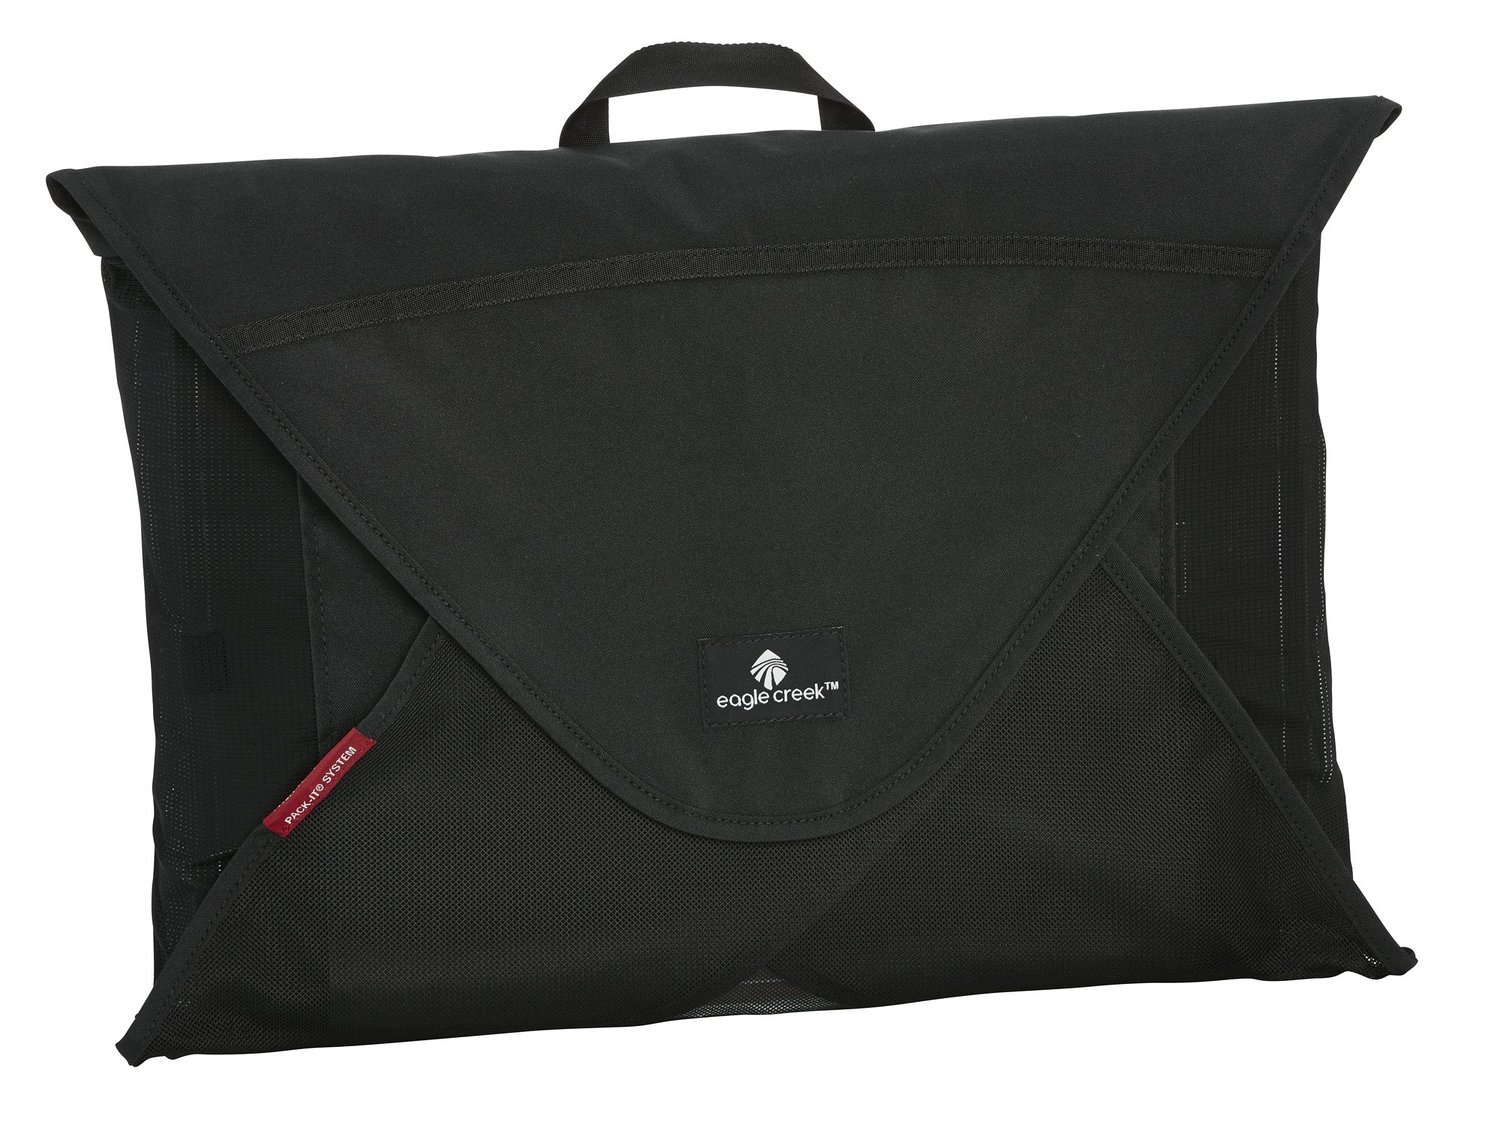 Eagle Creek Travel Gear Pack-It Garment Folder Medium, Black, One Size